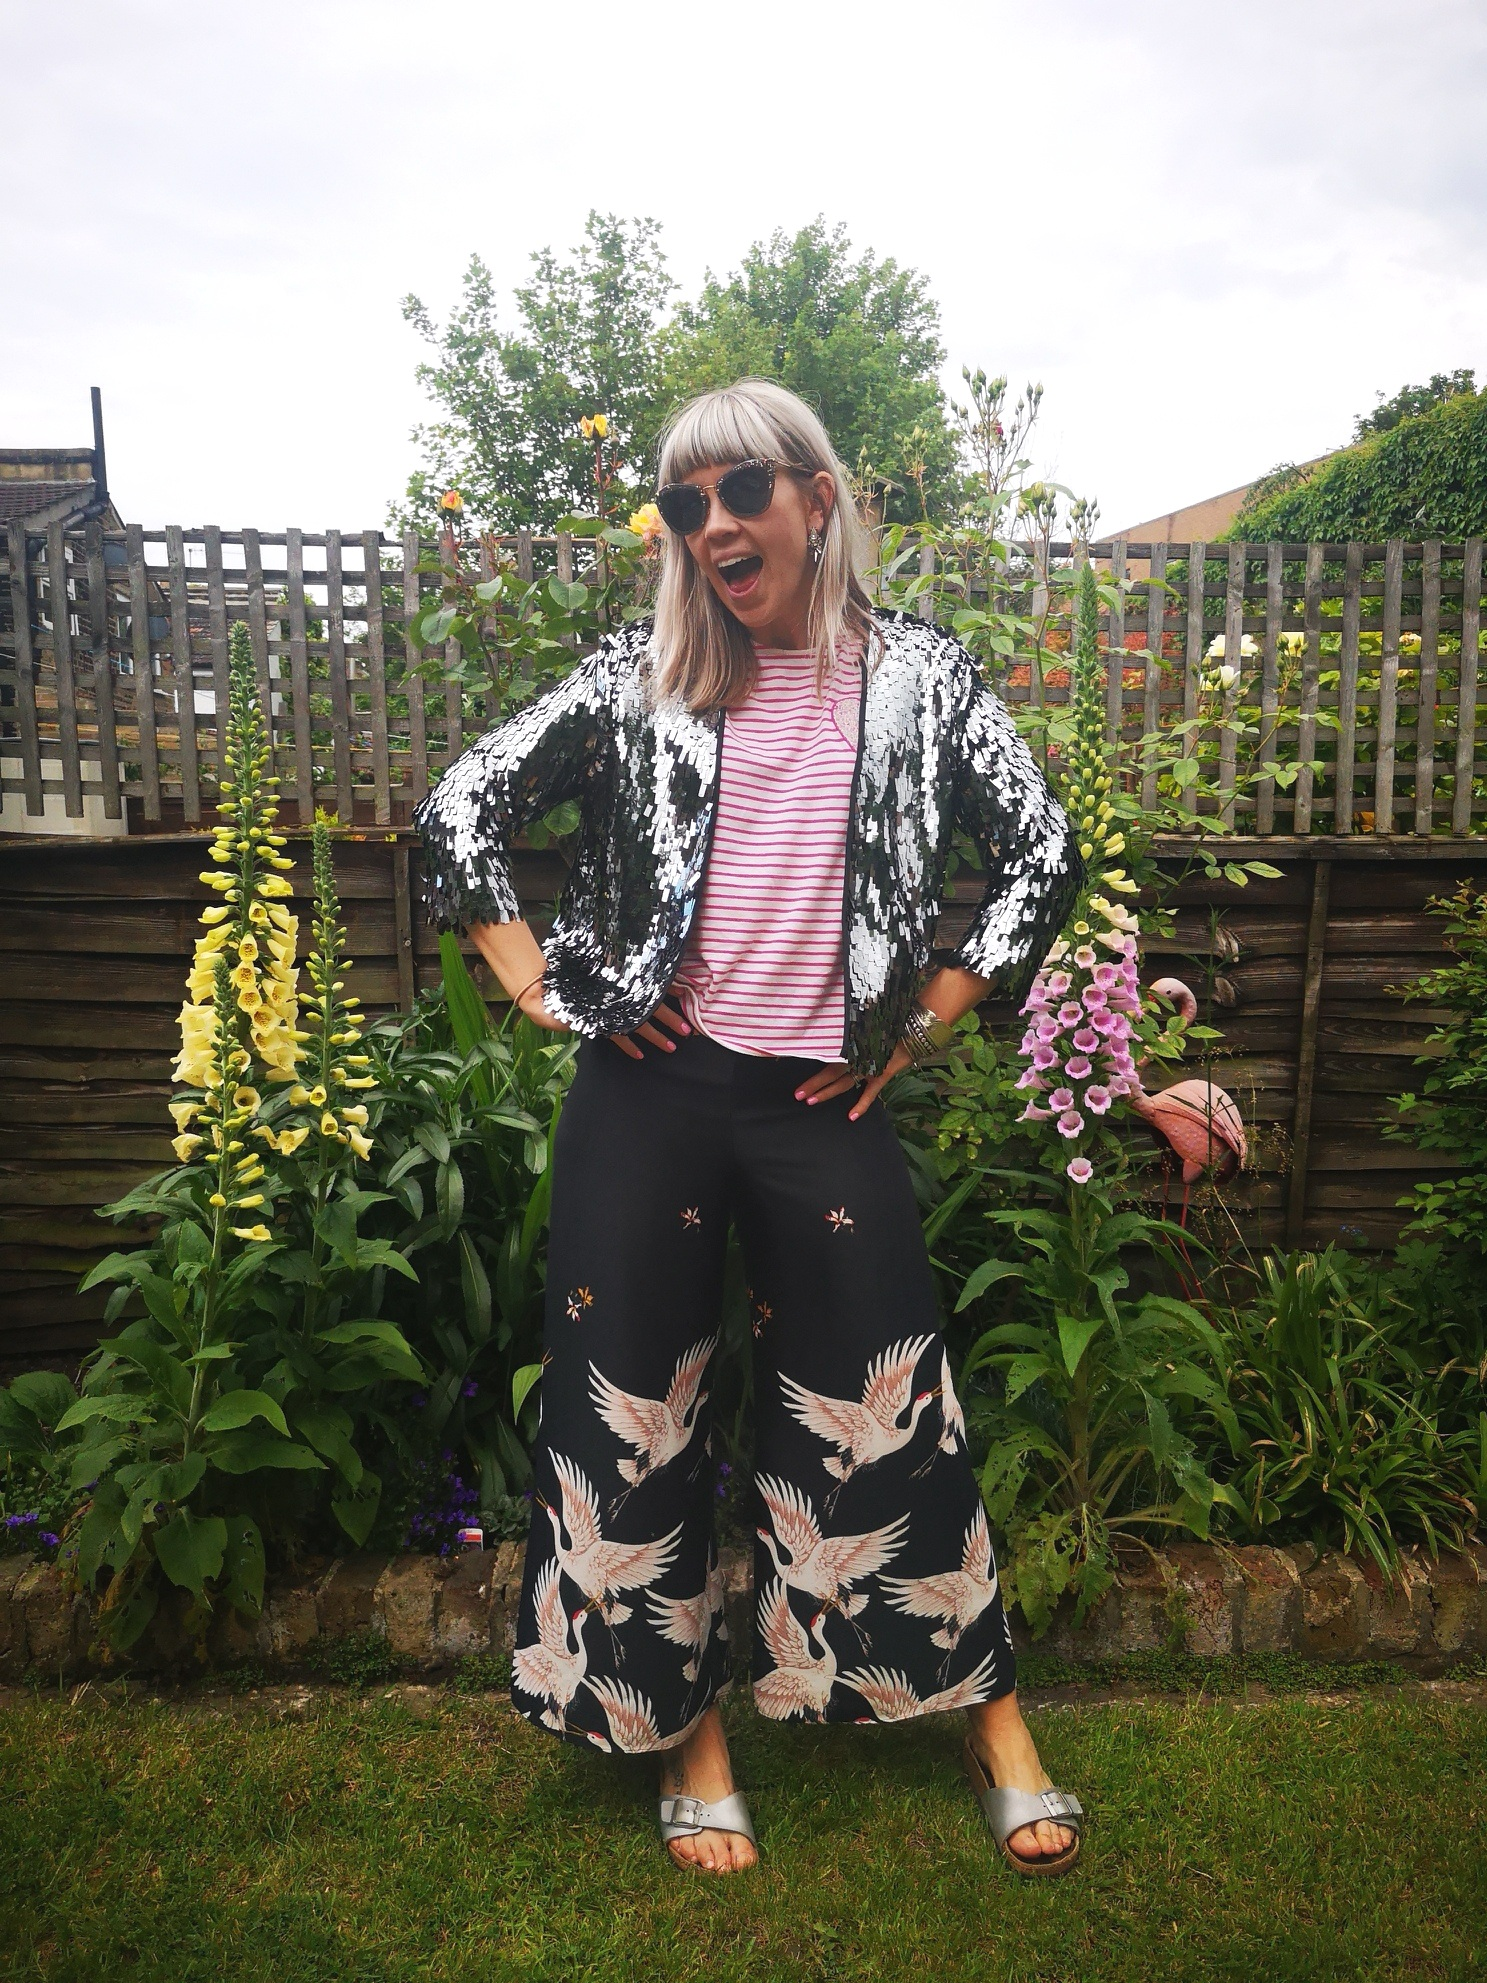 Mixing patterns, colors, and textures. Silver sequin jacket from eBbay with  Chinti & Parker  t-shirt on sale, and crane trousers from Zara (from many years ago)!